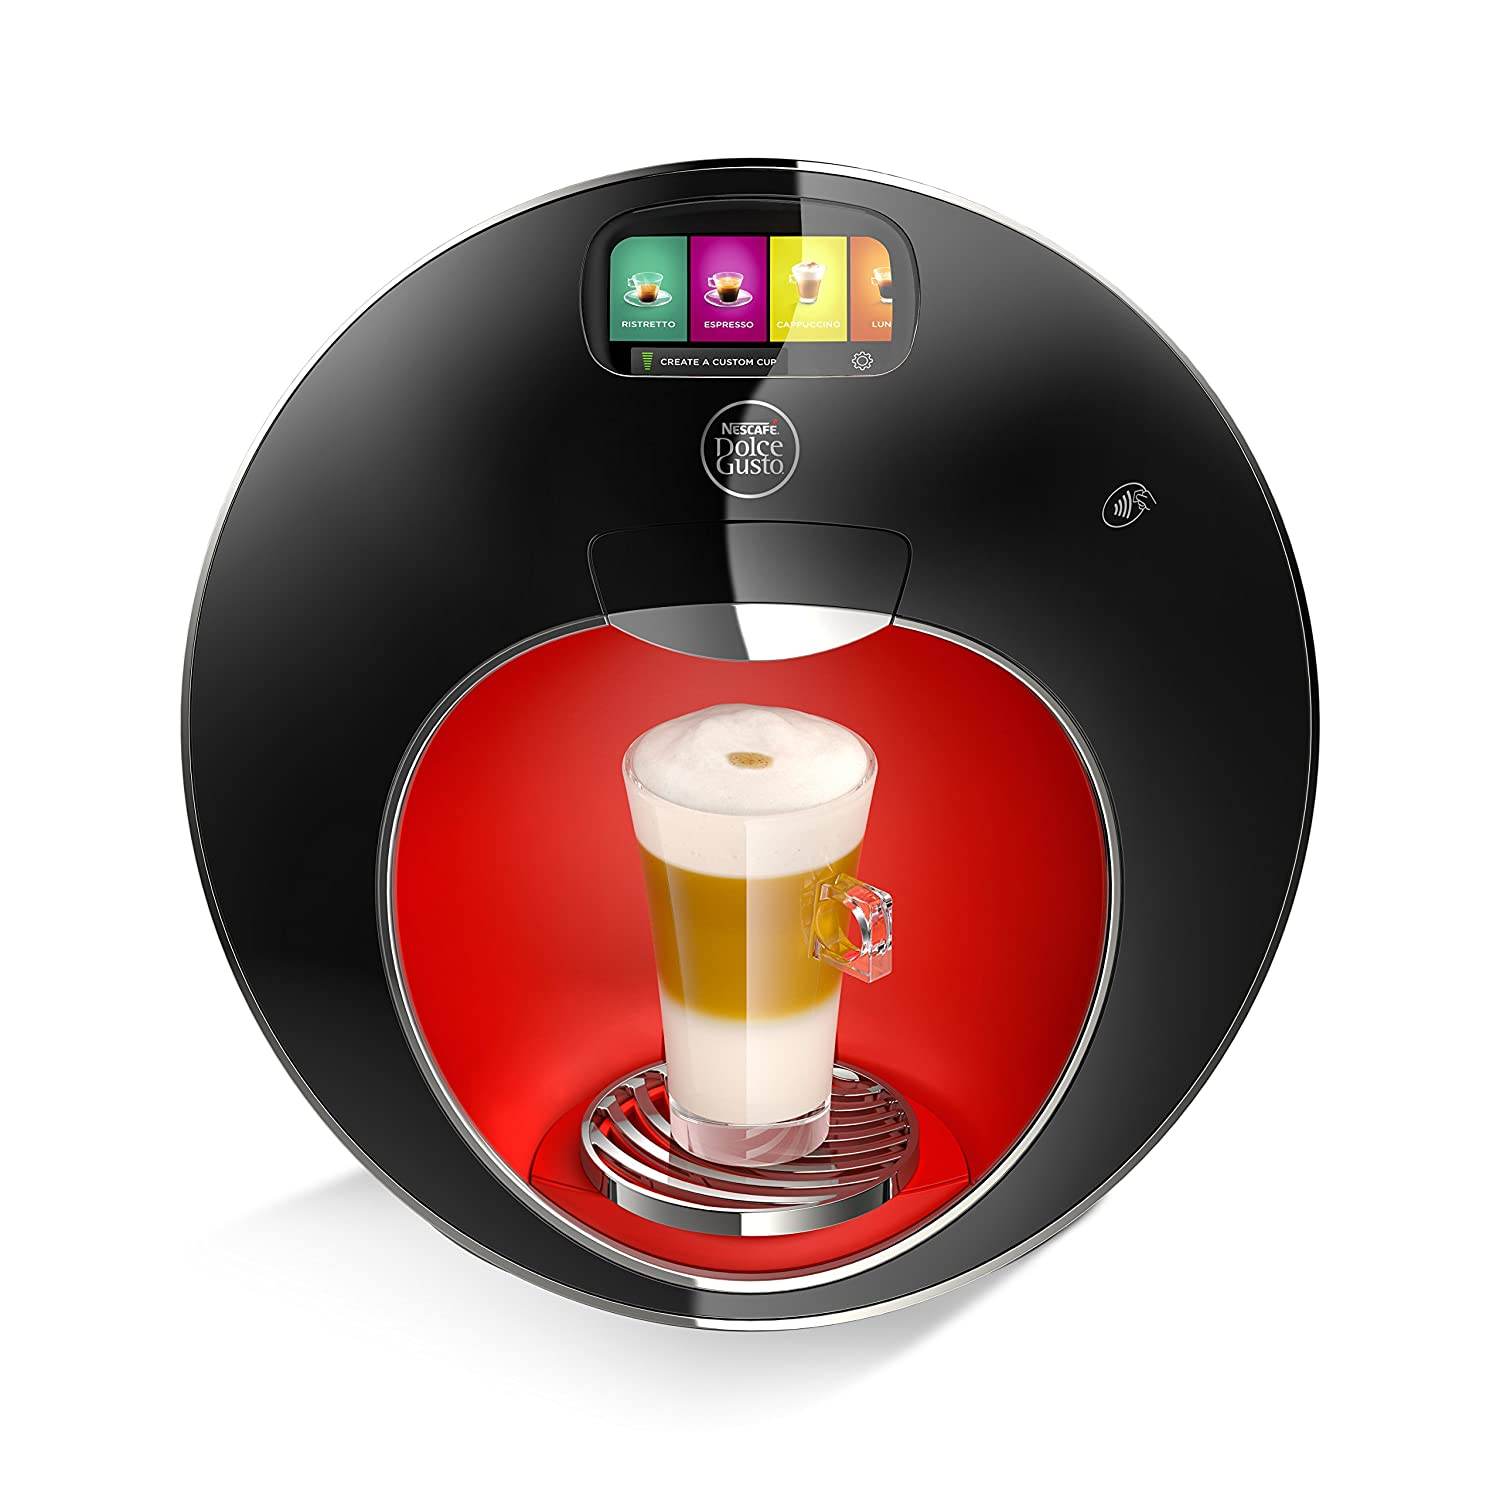 NESCAFÉ Dolce Gusto Coffee Machine, Majesto, Espresso, Cappuccino and Latte Pod Machine